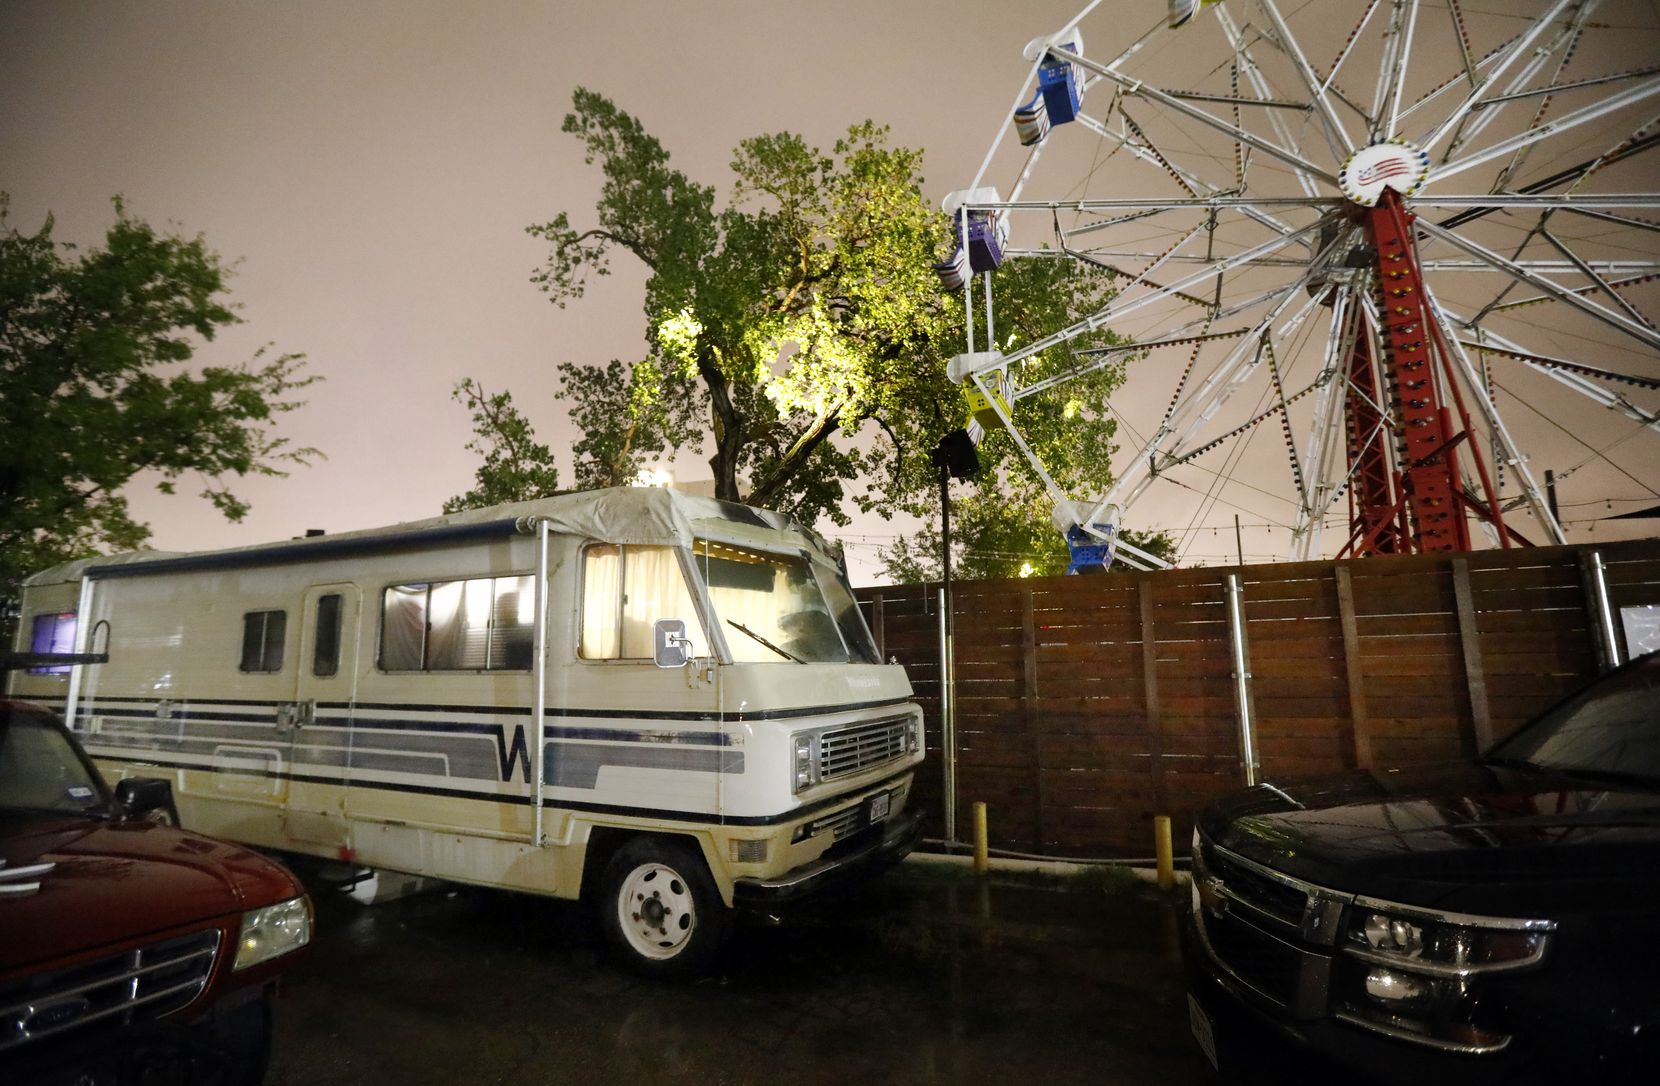 The ride at next-door Ferris Wheelers overlooks Jade Spa, and the camper where police found a man who claimed to be the spa's maintenance man.